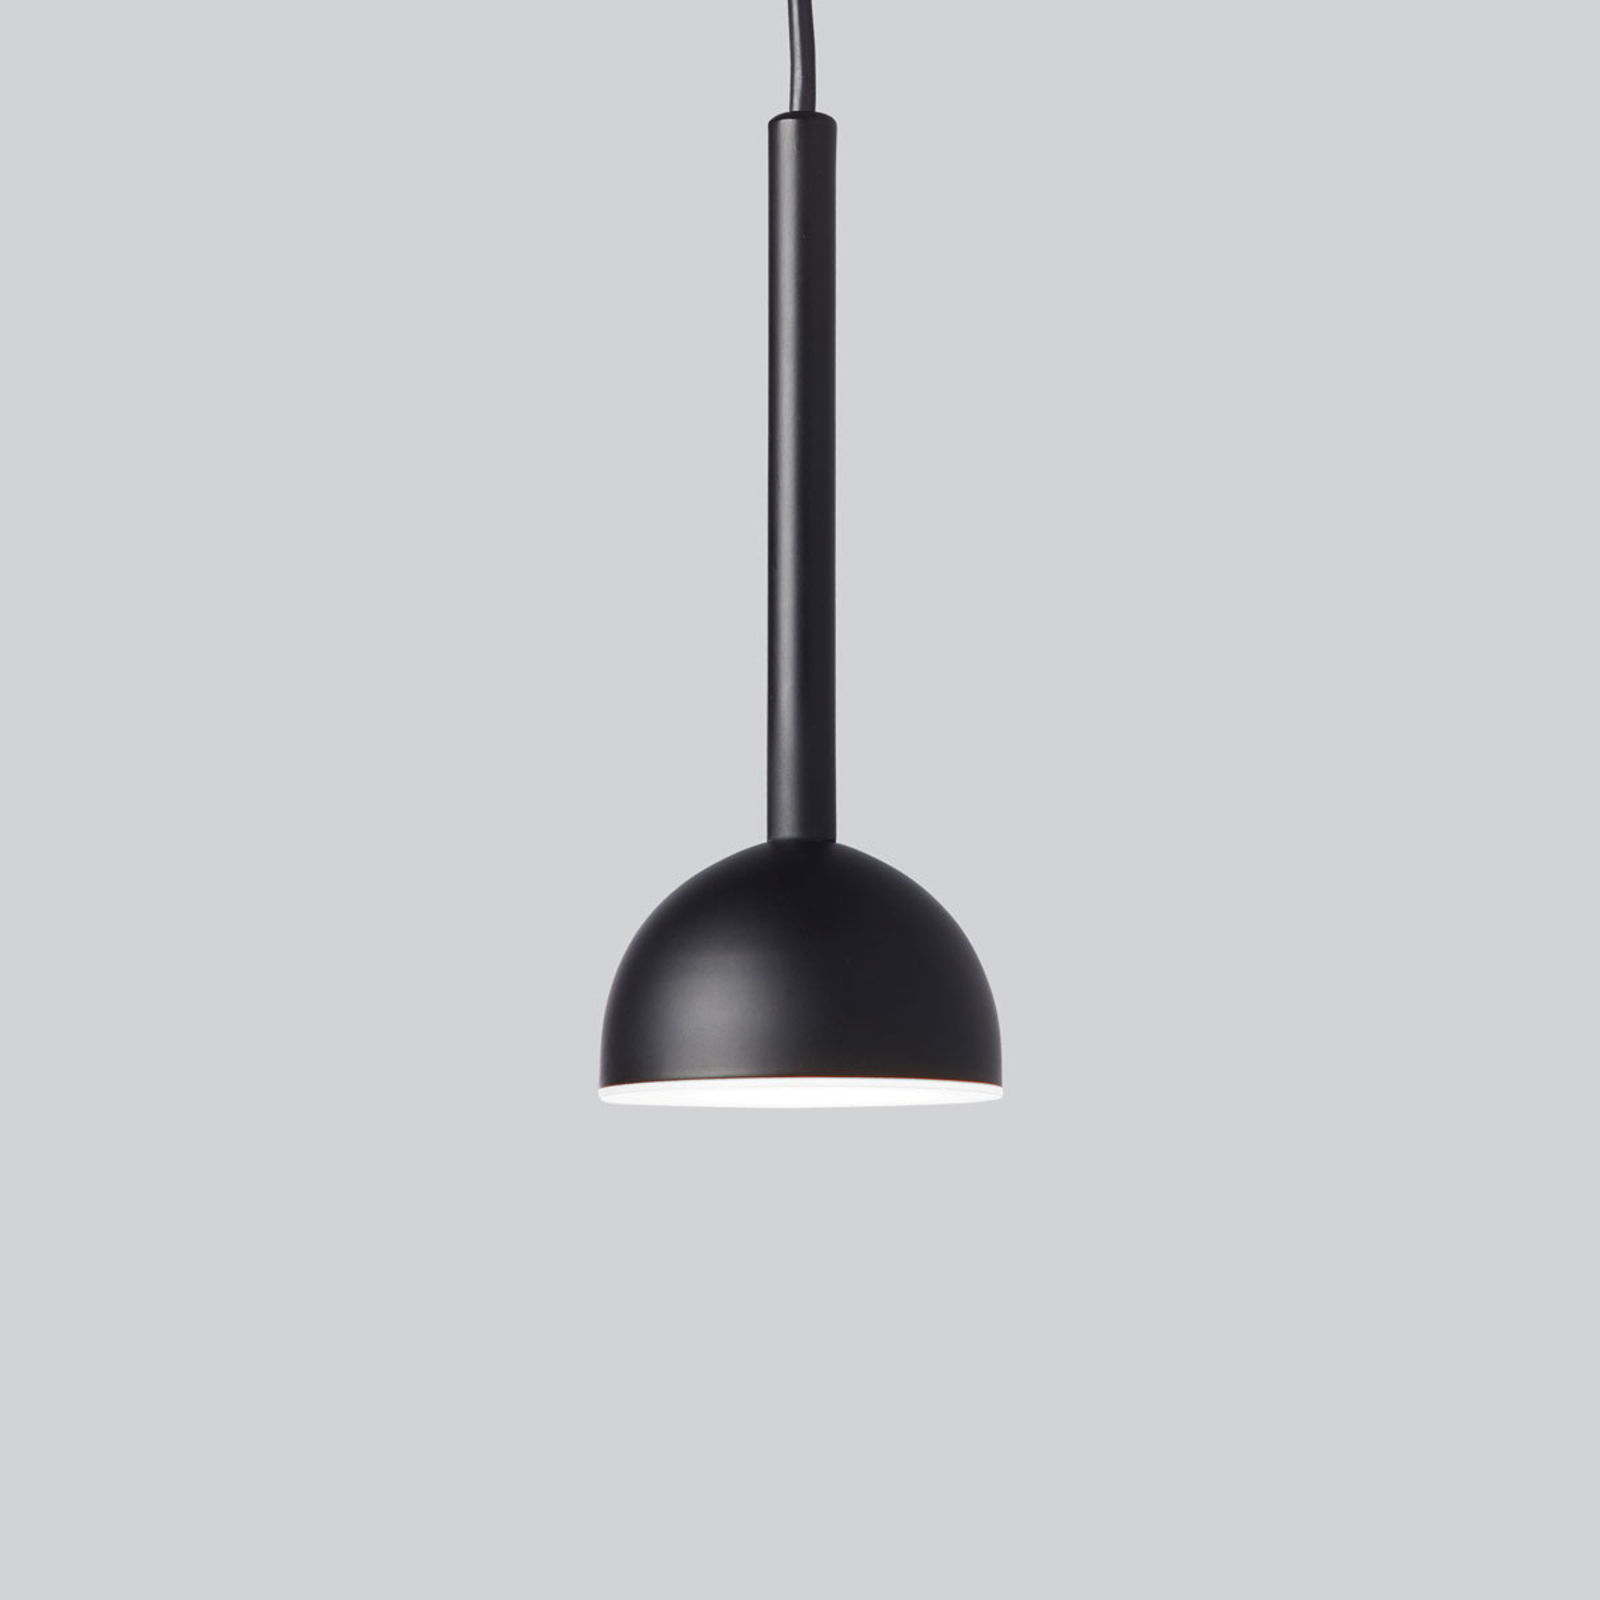 Northern Blush LED hanglamp zwart